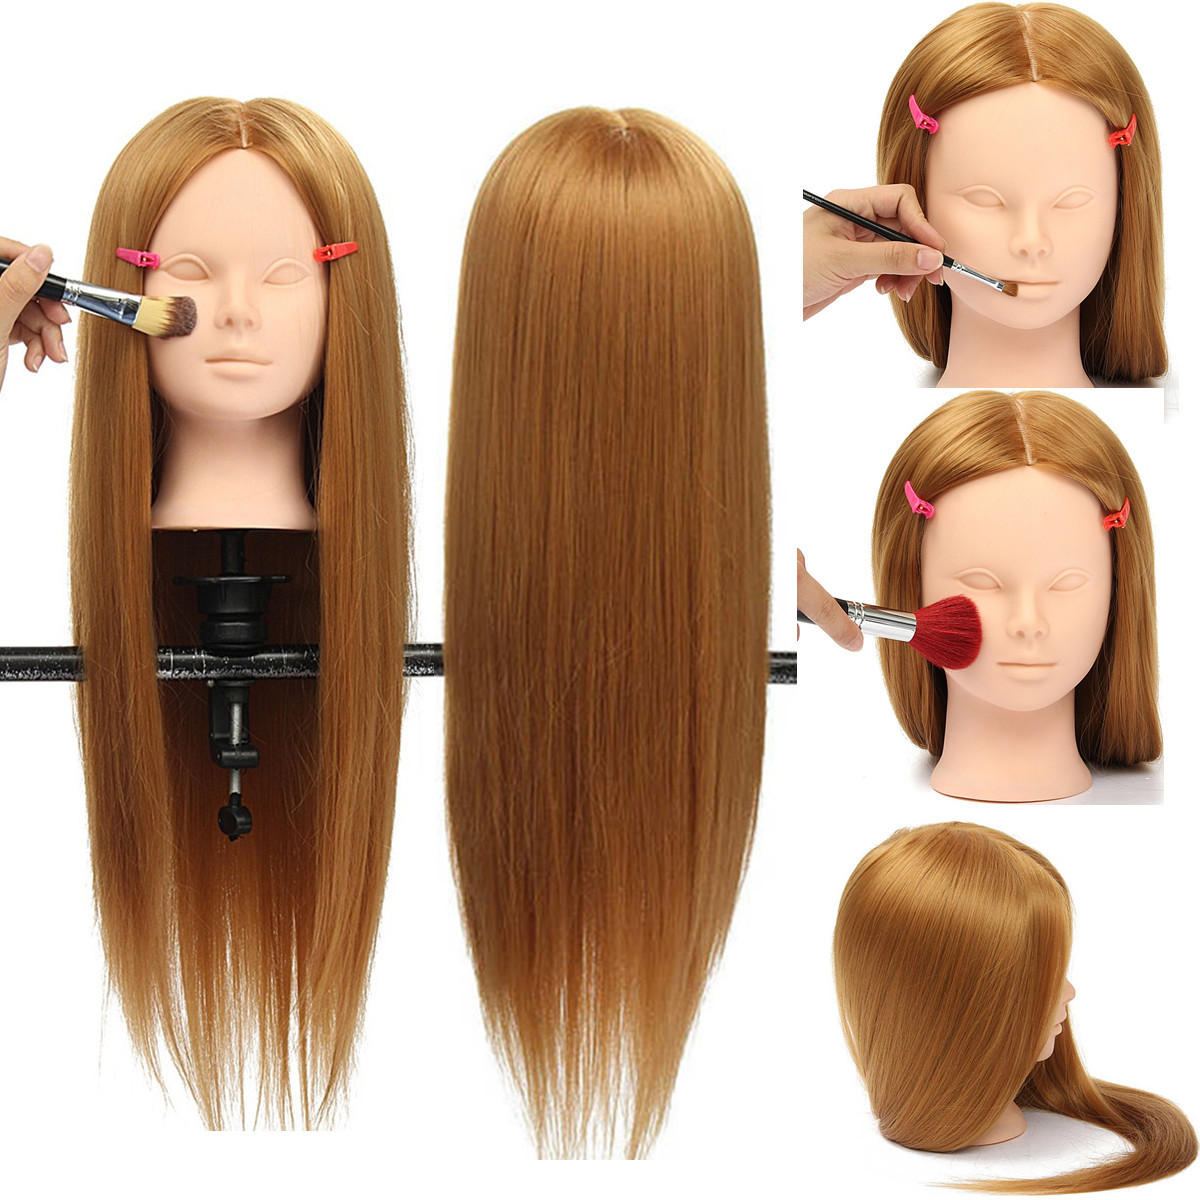 26 Long Hair Training Mannequin Head Model Hairdressing Makeup Practice With Clamp Holder Hair Care Tools From Health Beauty Hair On Banggood Com Hair Mannequin Long Hair Styles Makeup Practice Head